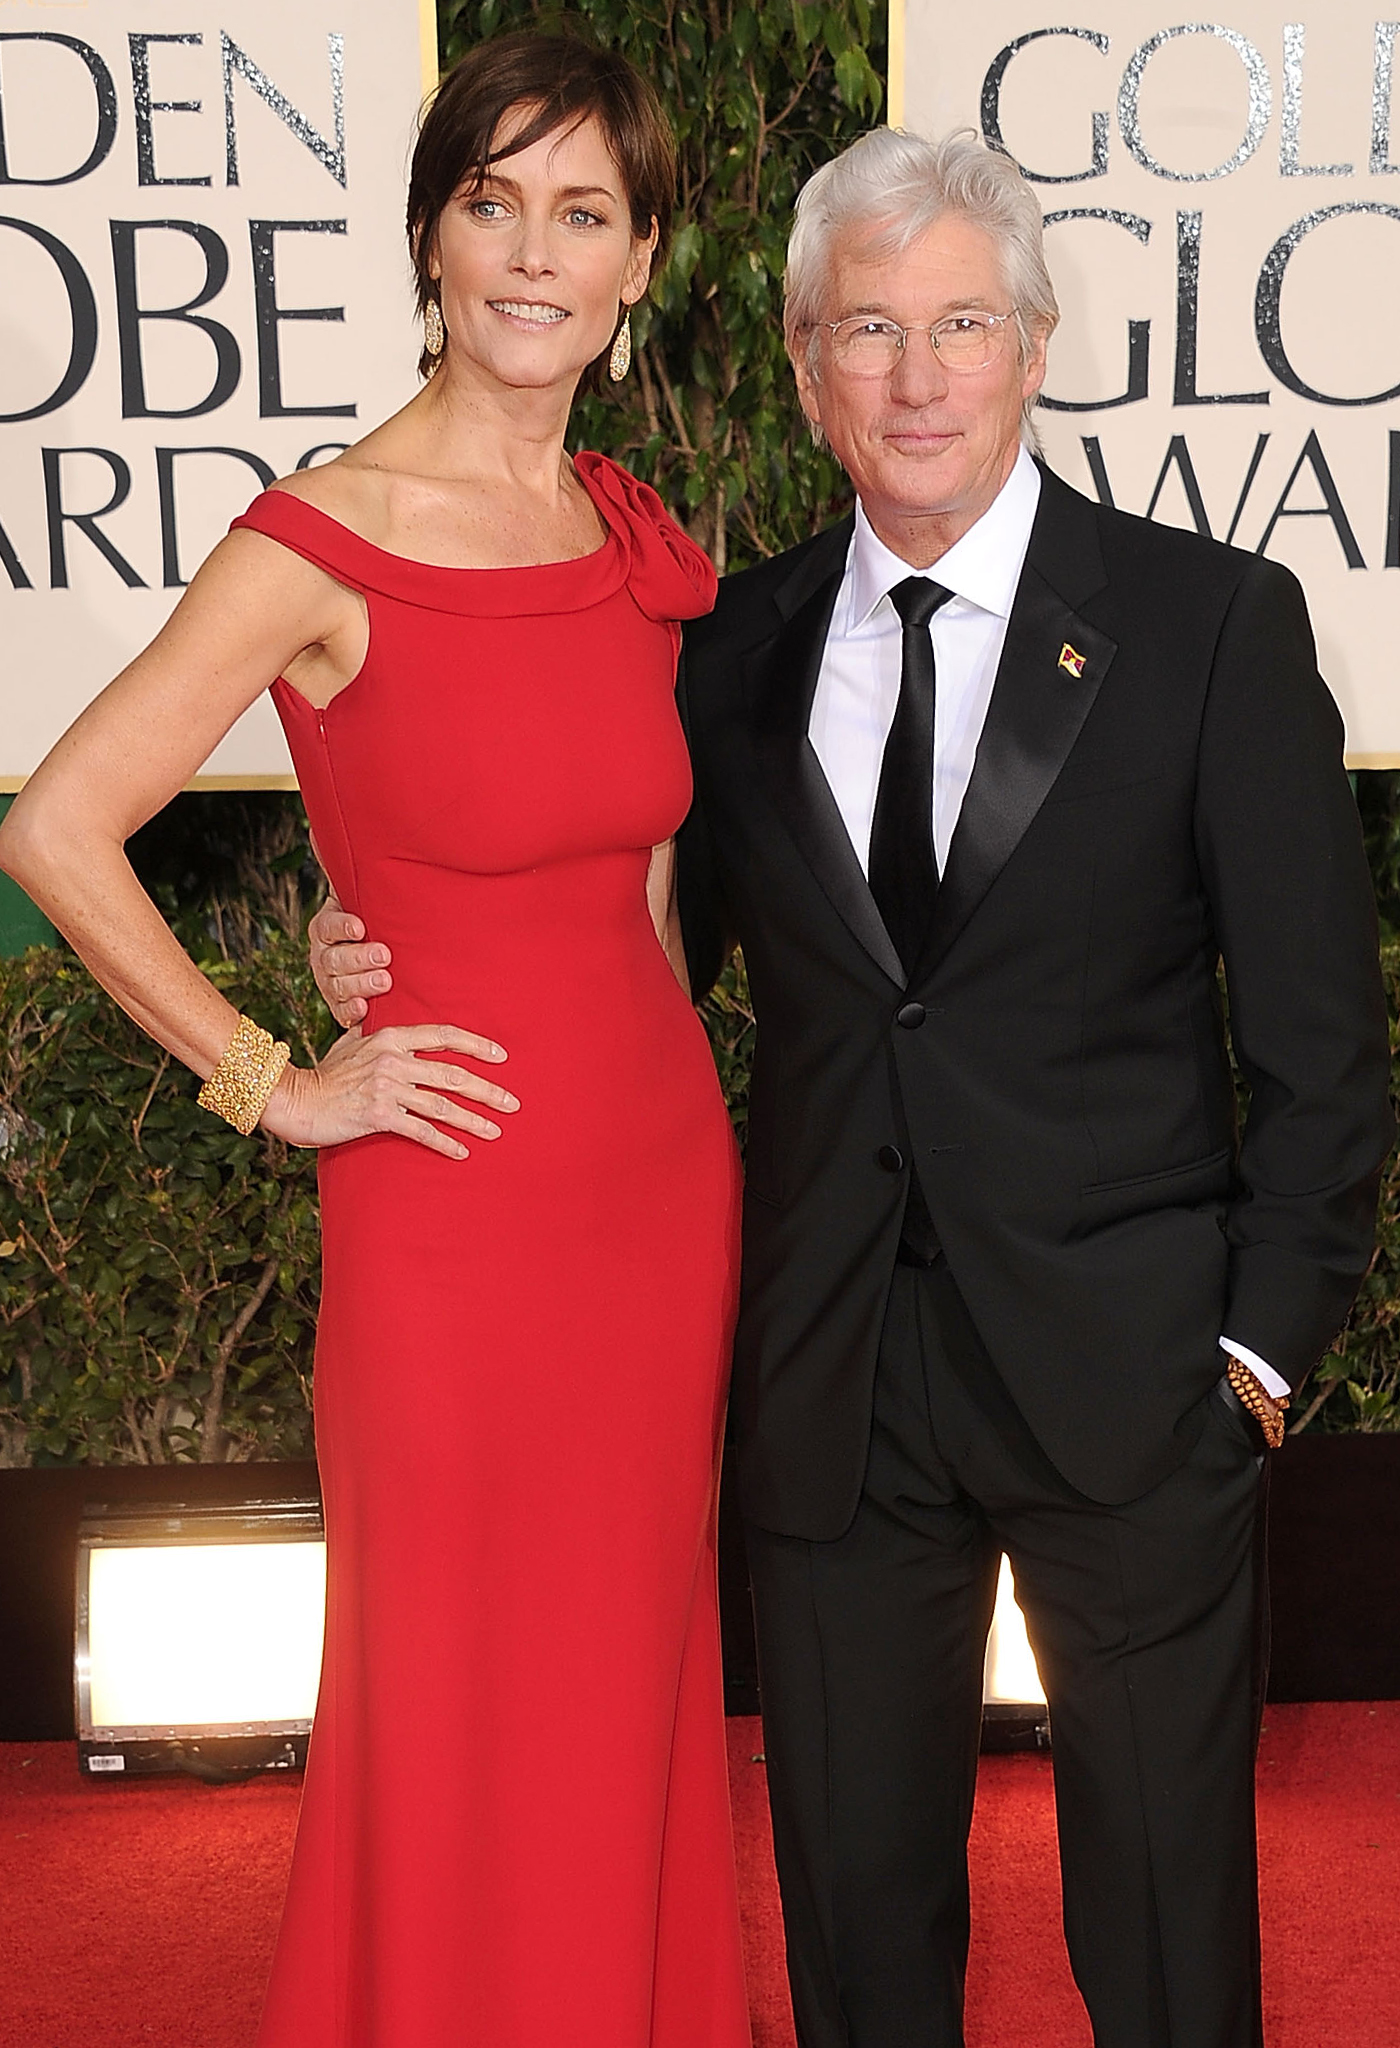 Carey Lowell and Richard Gere (Steve Granitz/WireImage)